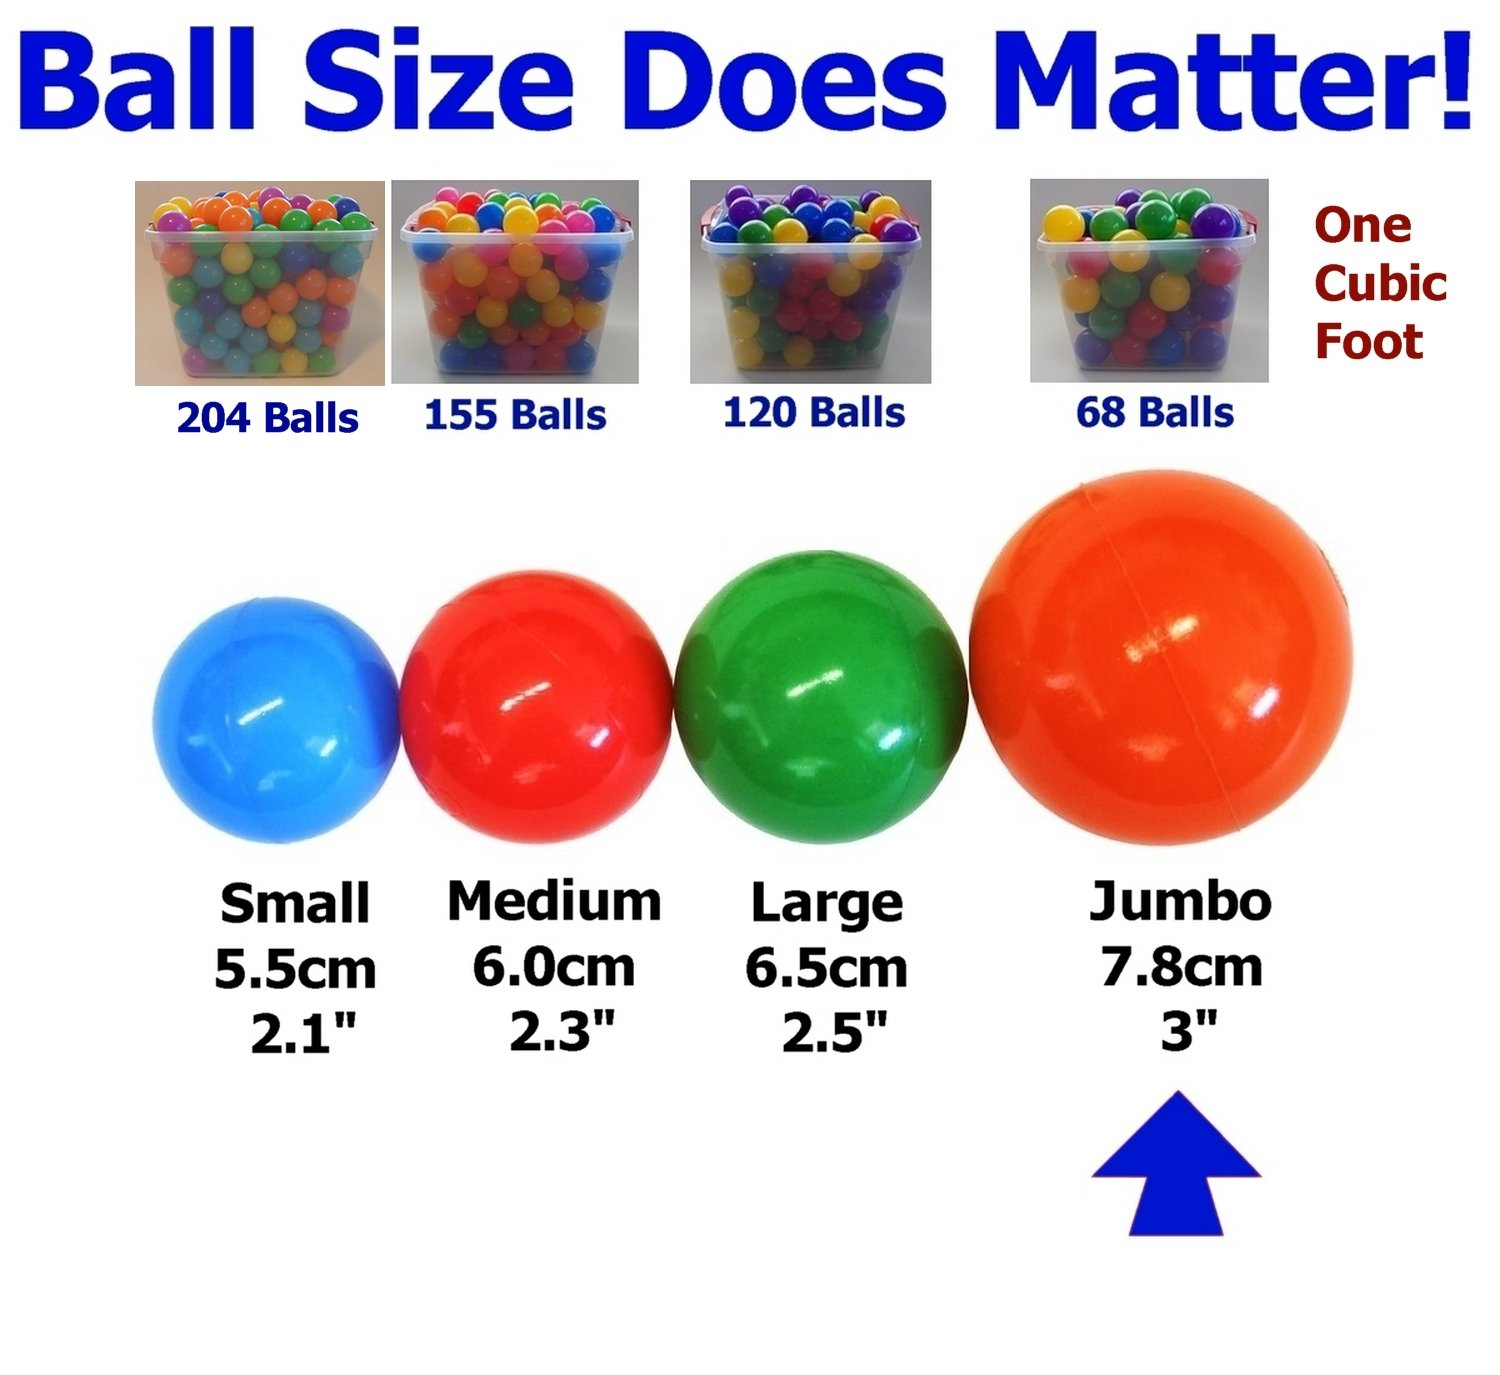 My Balls Pack of Jumbo 3'' Crush-Proof Ball Pit Balls - 5 Bright Colors, Phthalate Free, BPA Free, PVC Free, Non-Toxic, Non-Recycled Plastic by My Balls (Image #3)